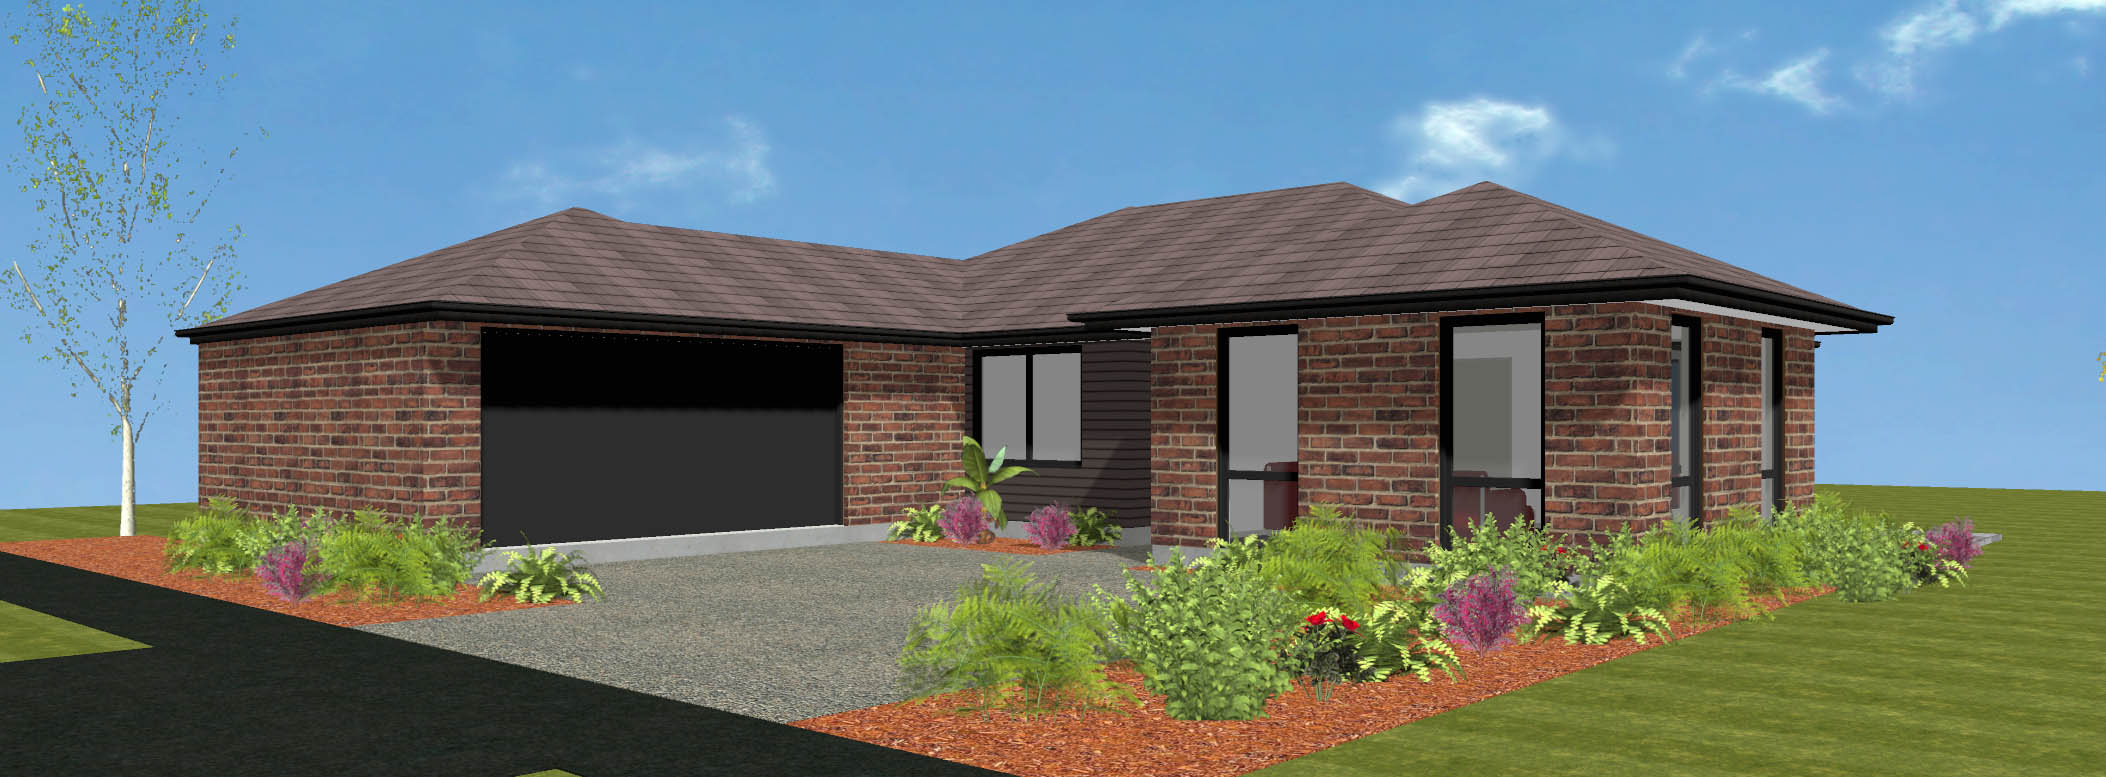 Piha new house plan and design wellington kapiti wairarapa for Wellington house designs